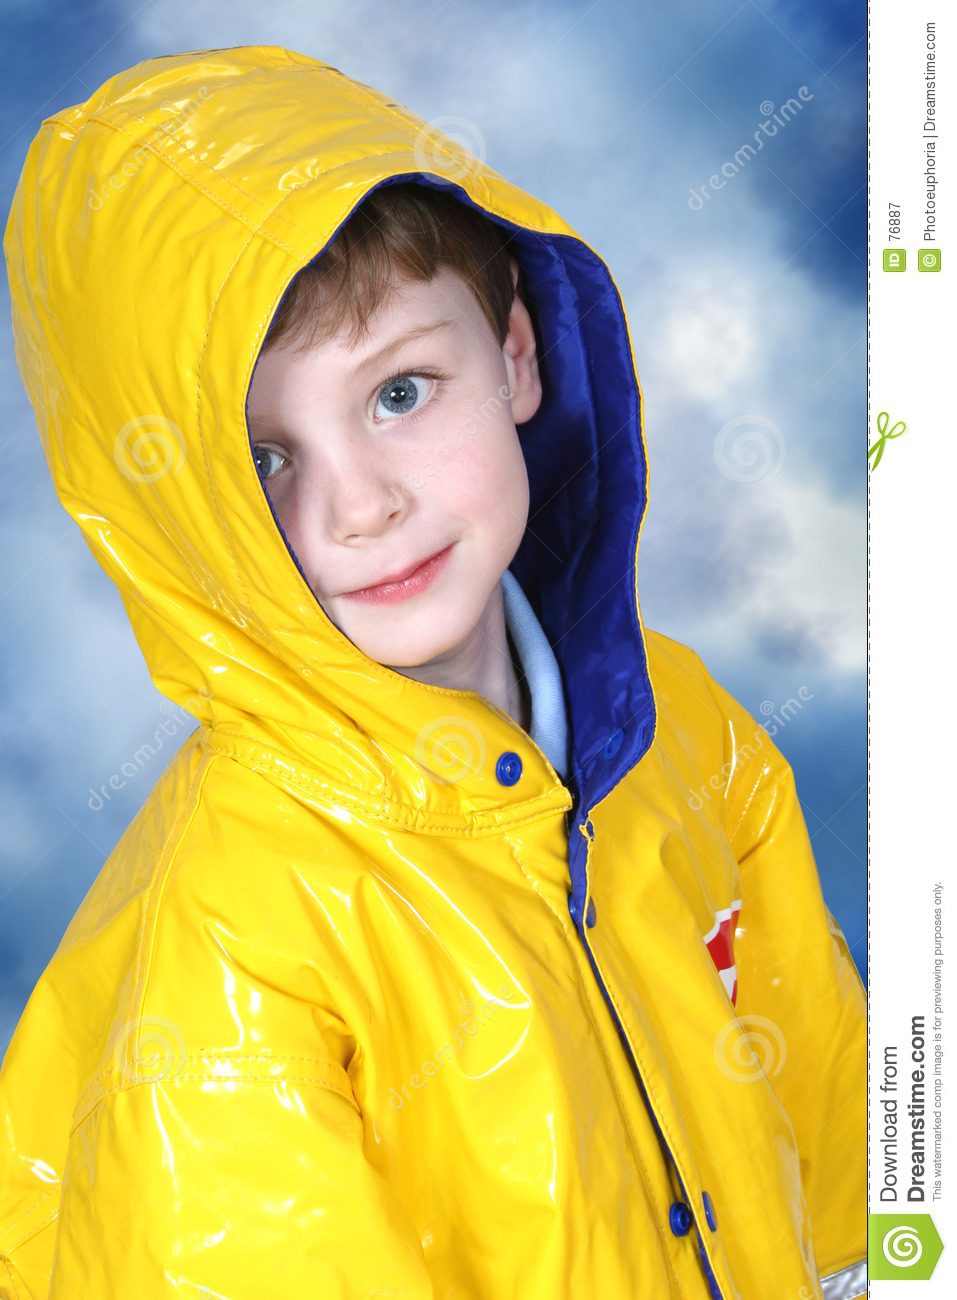 Adorable Four Year Old Boy in Rain Coat